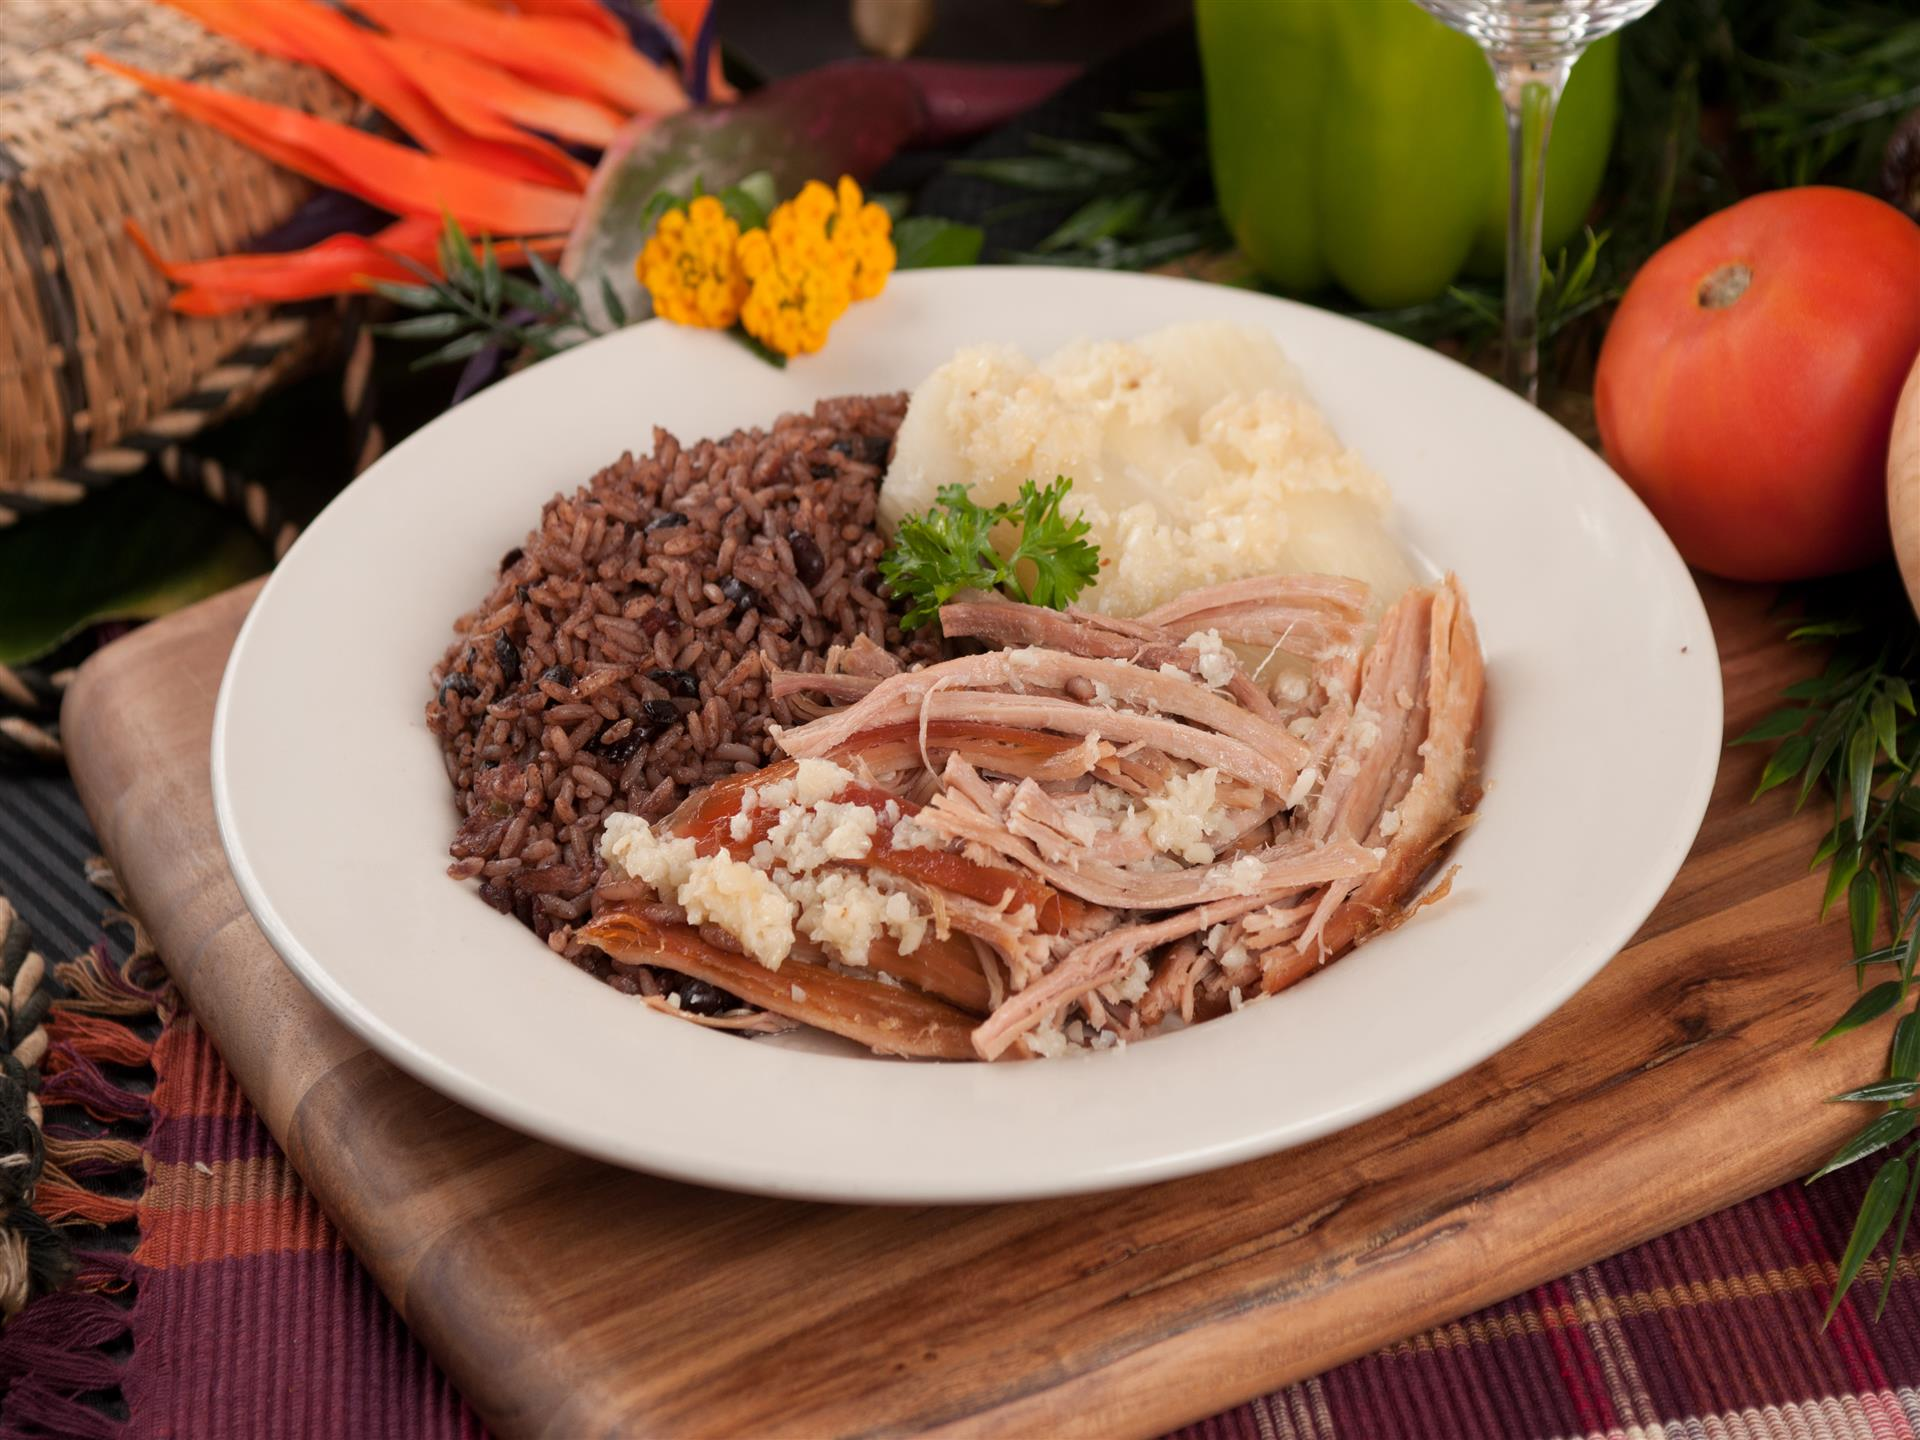 Pernil. Oven-roasted pork topped with our specialty garlic sauce. Mashed potatoes, rice and beans on the side.